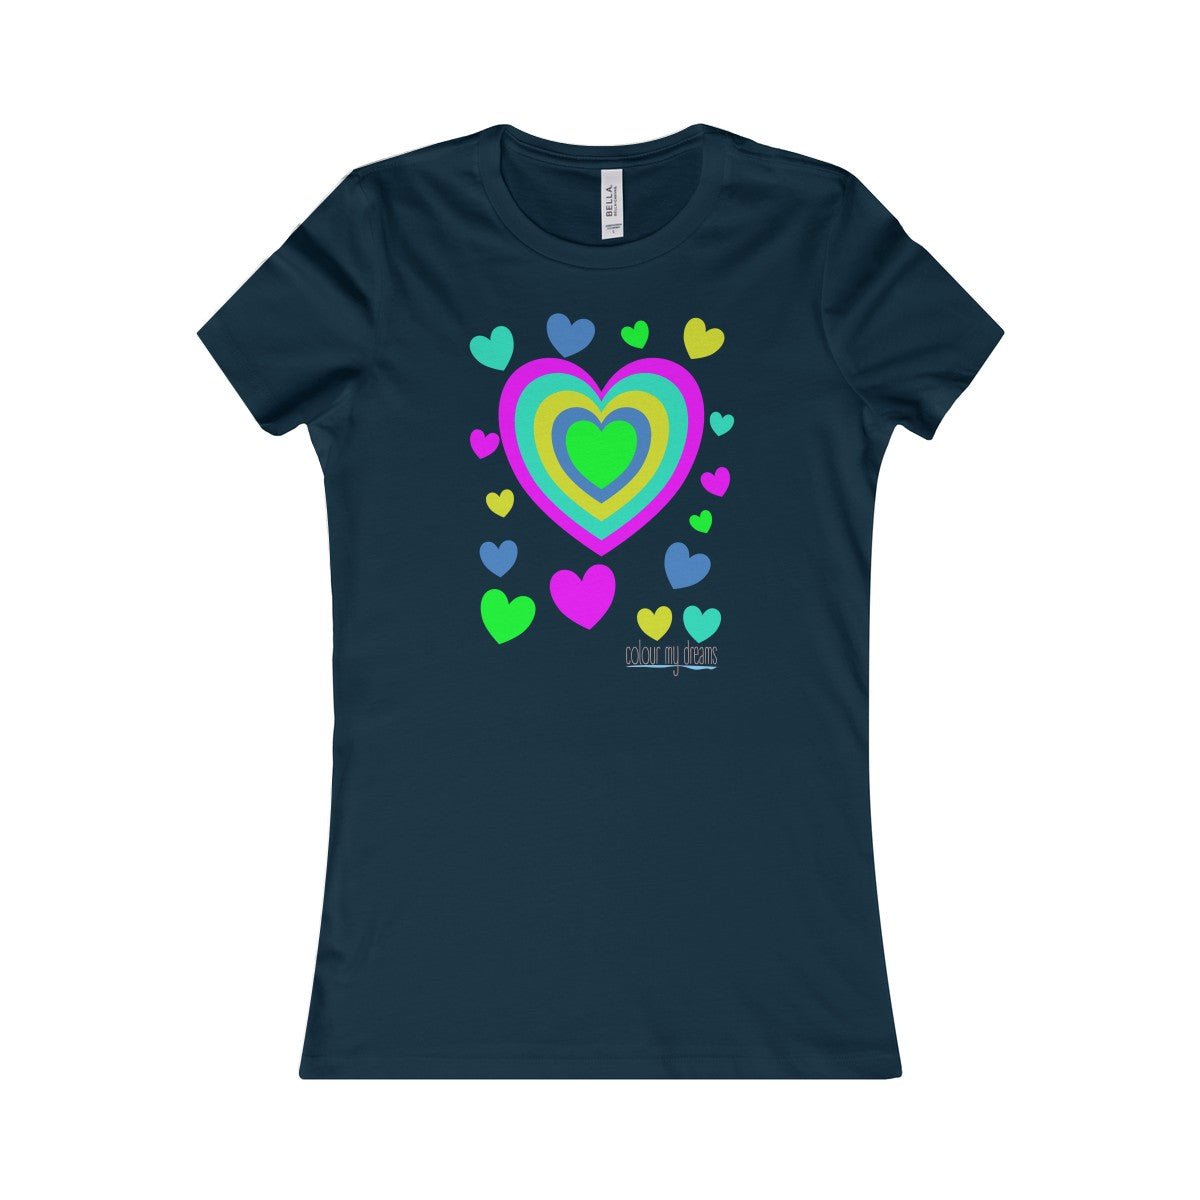 Women's Favourite T-Shirt - Springtime Love